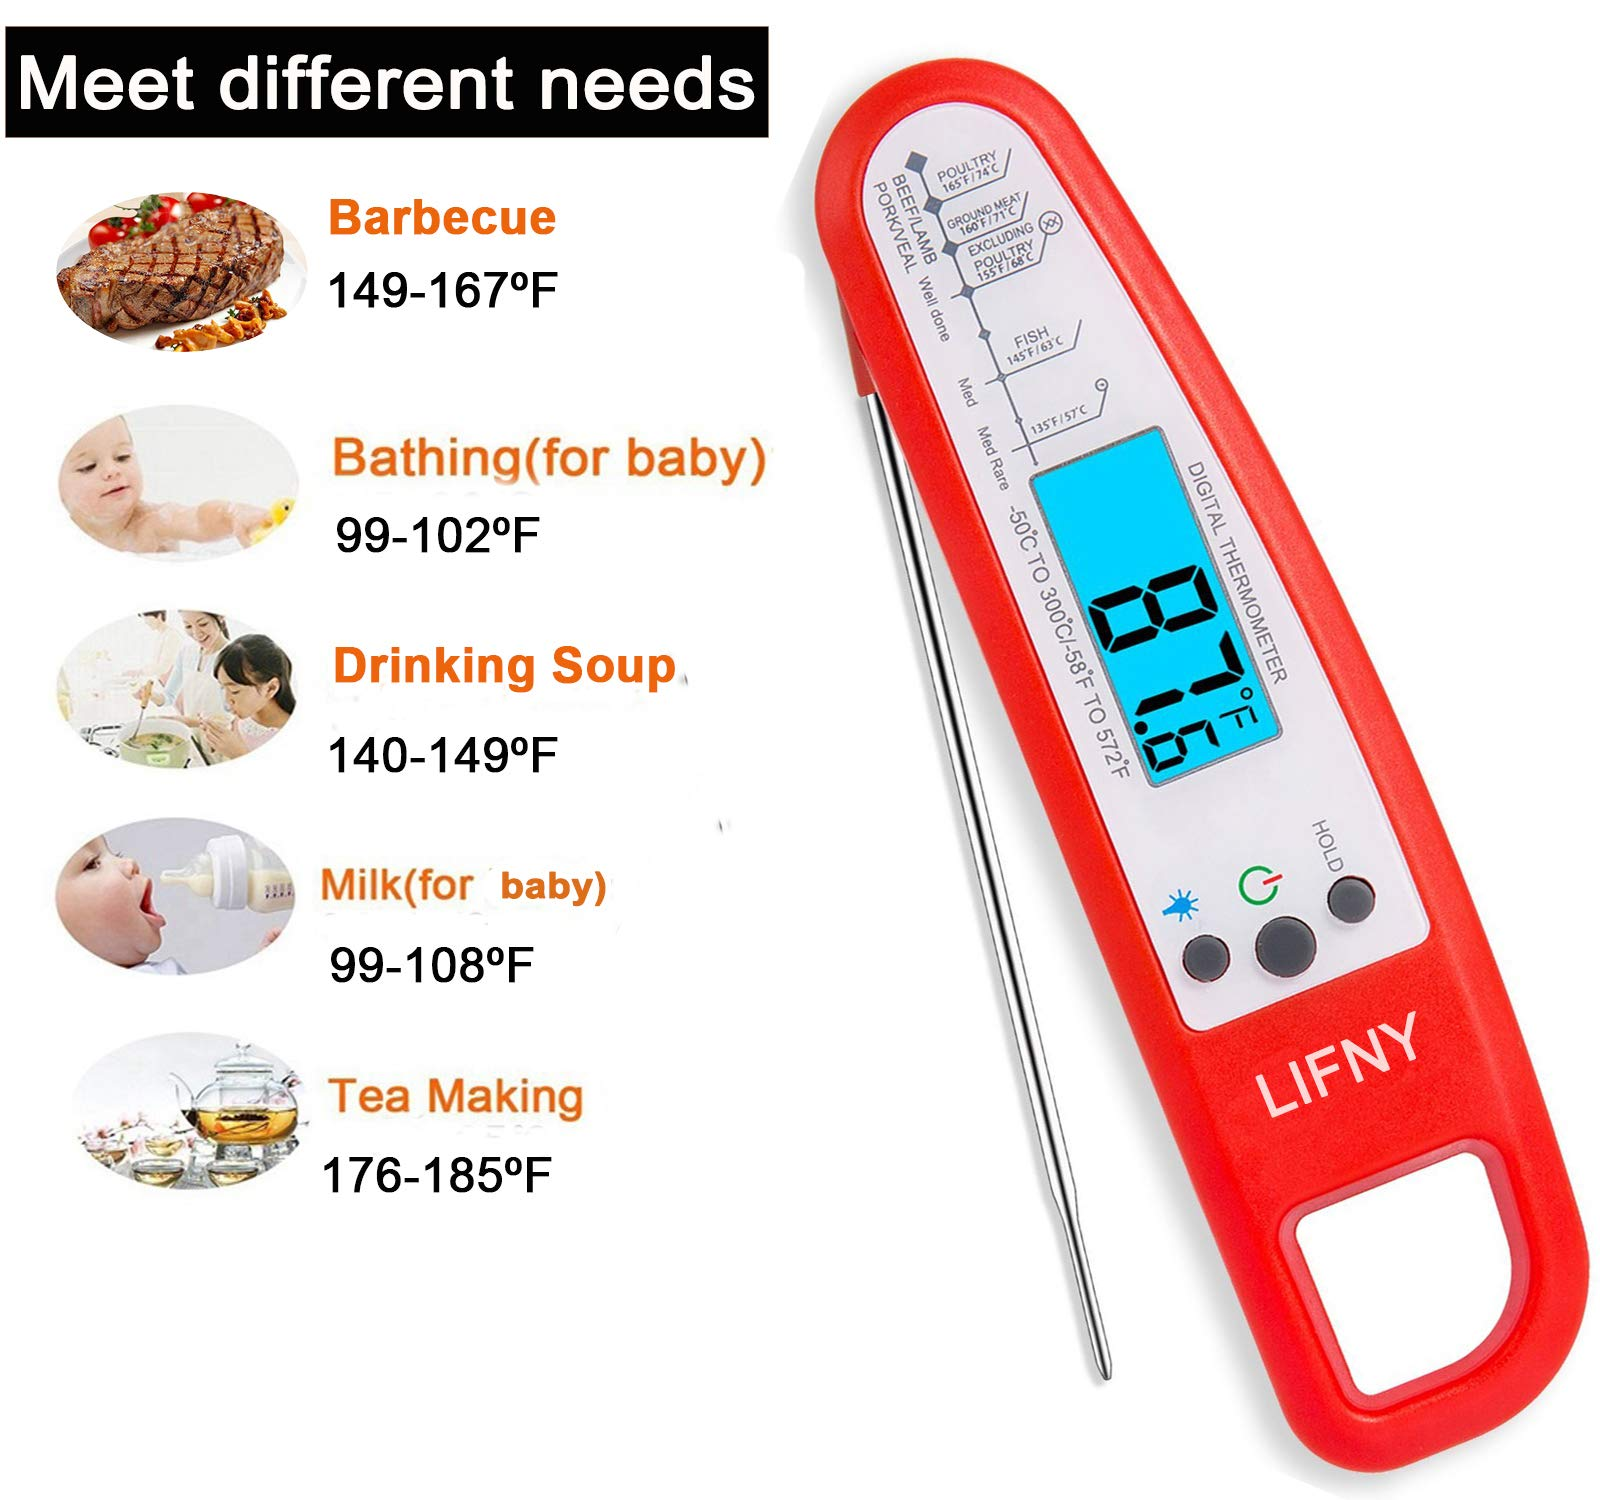 Digital Meat Thermometer Instant Read Thermometer for Grill and Cooking with Calibration and Backlit -Digital Food Thermometer Waterproof for Food,Milk,Tea,BBQ- Digital Cooking Thermometer with probe